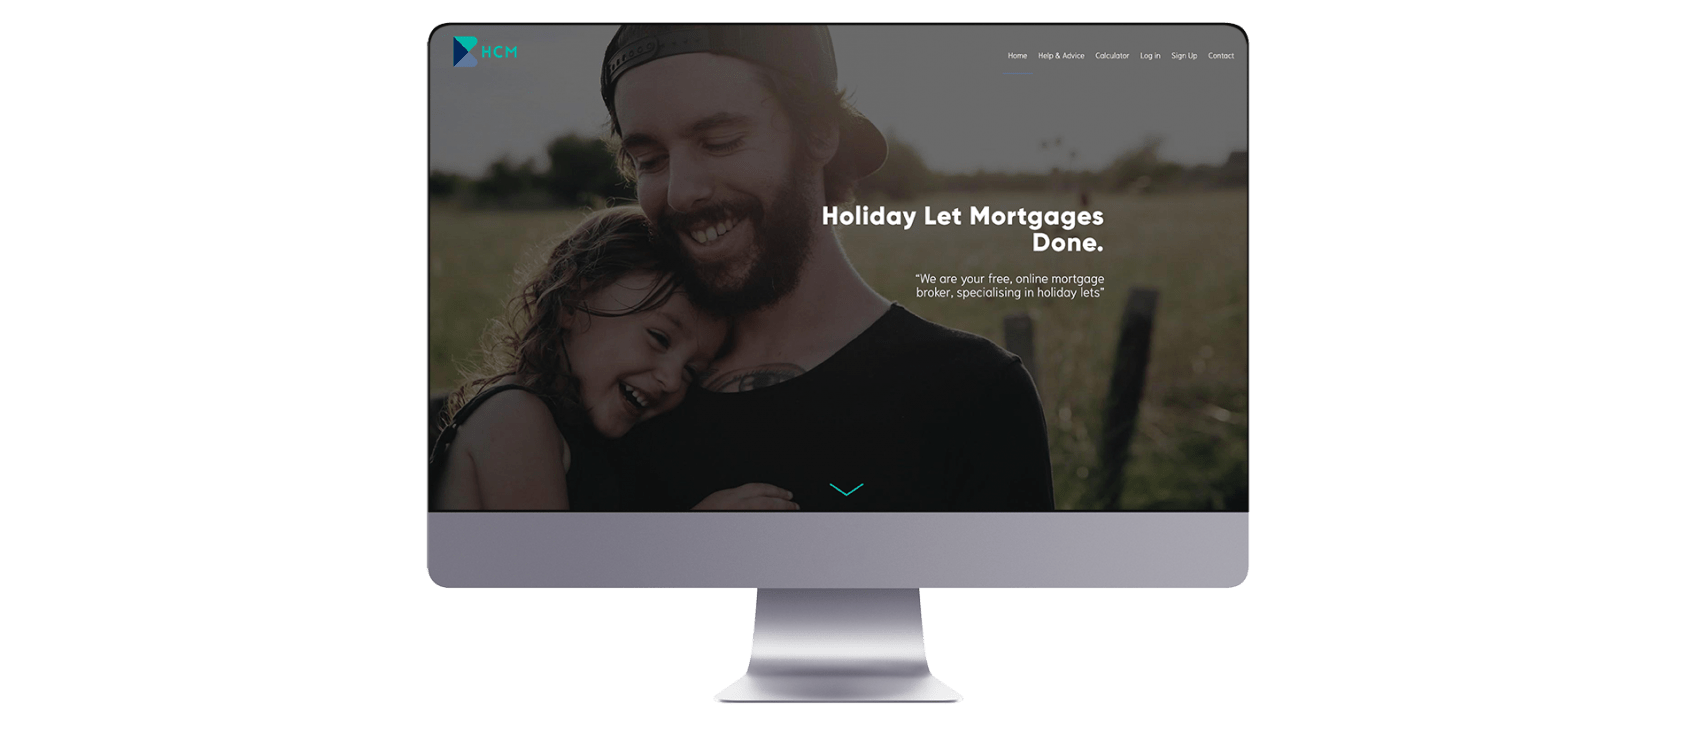 Holiday Cottage Mortgages Website Design on Mac